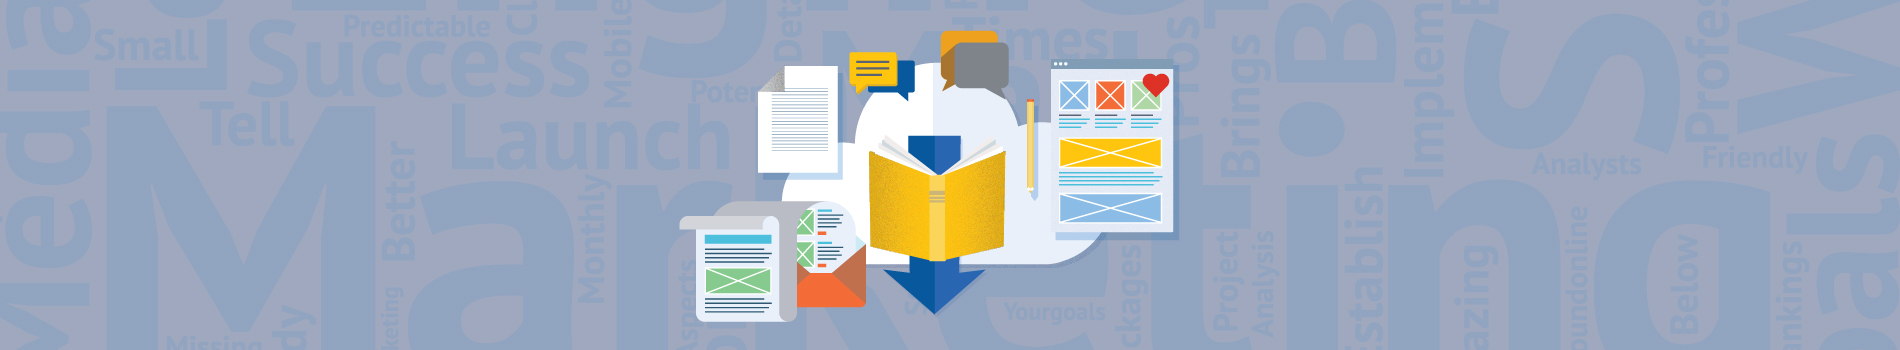 Graphic design image of various words formats of information like blogs, PDF's and newsletters